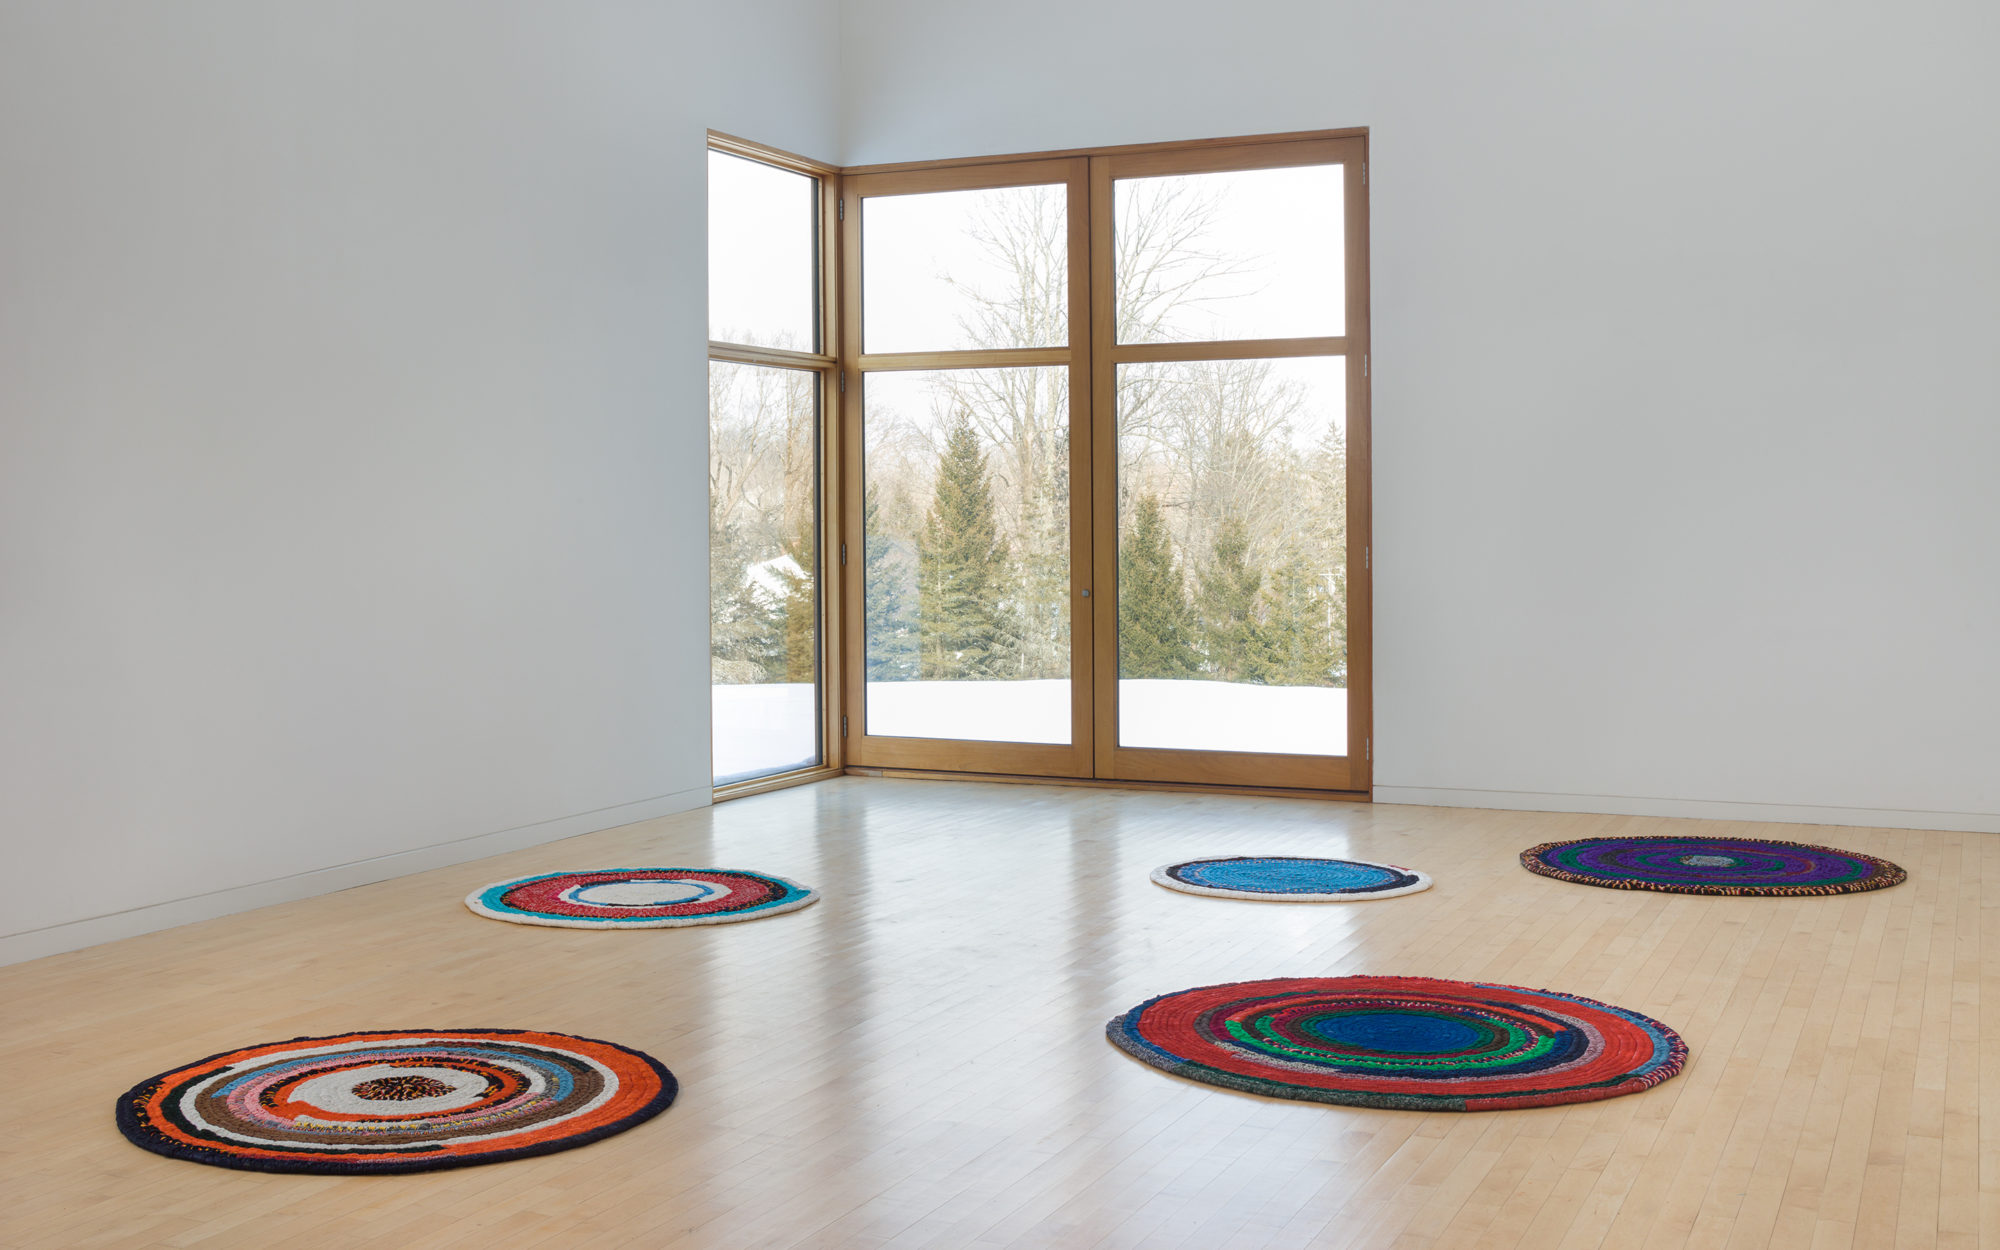 Harmony Hammond's Floorpieces at The Aldrich Contemporary Art Museum